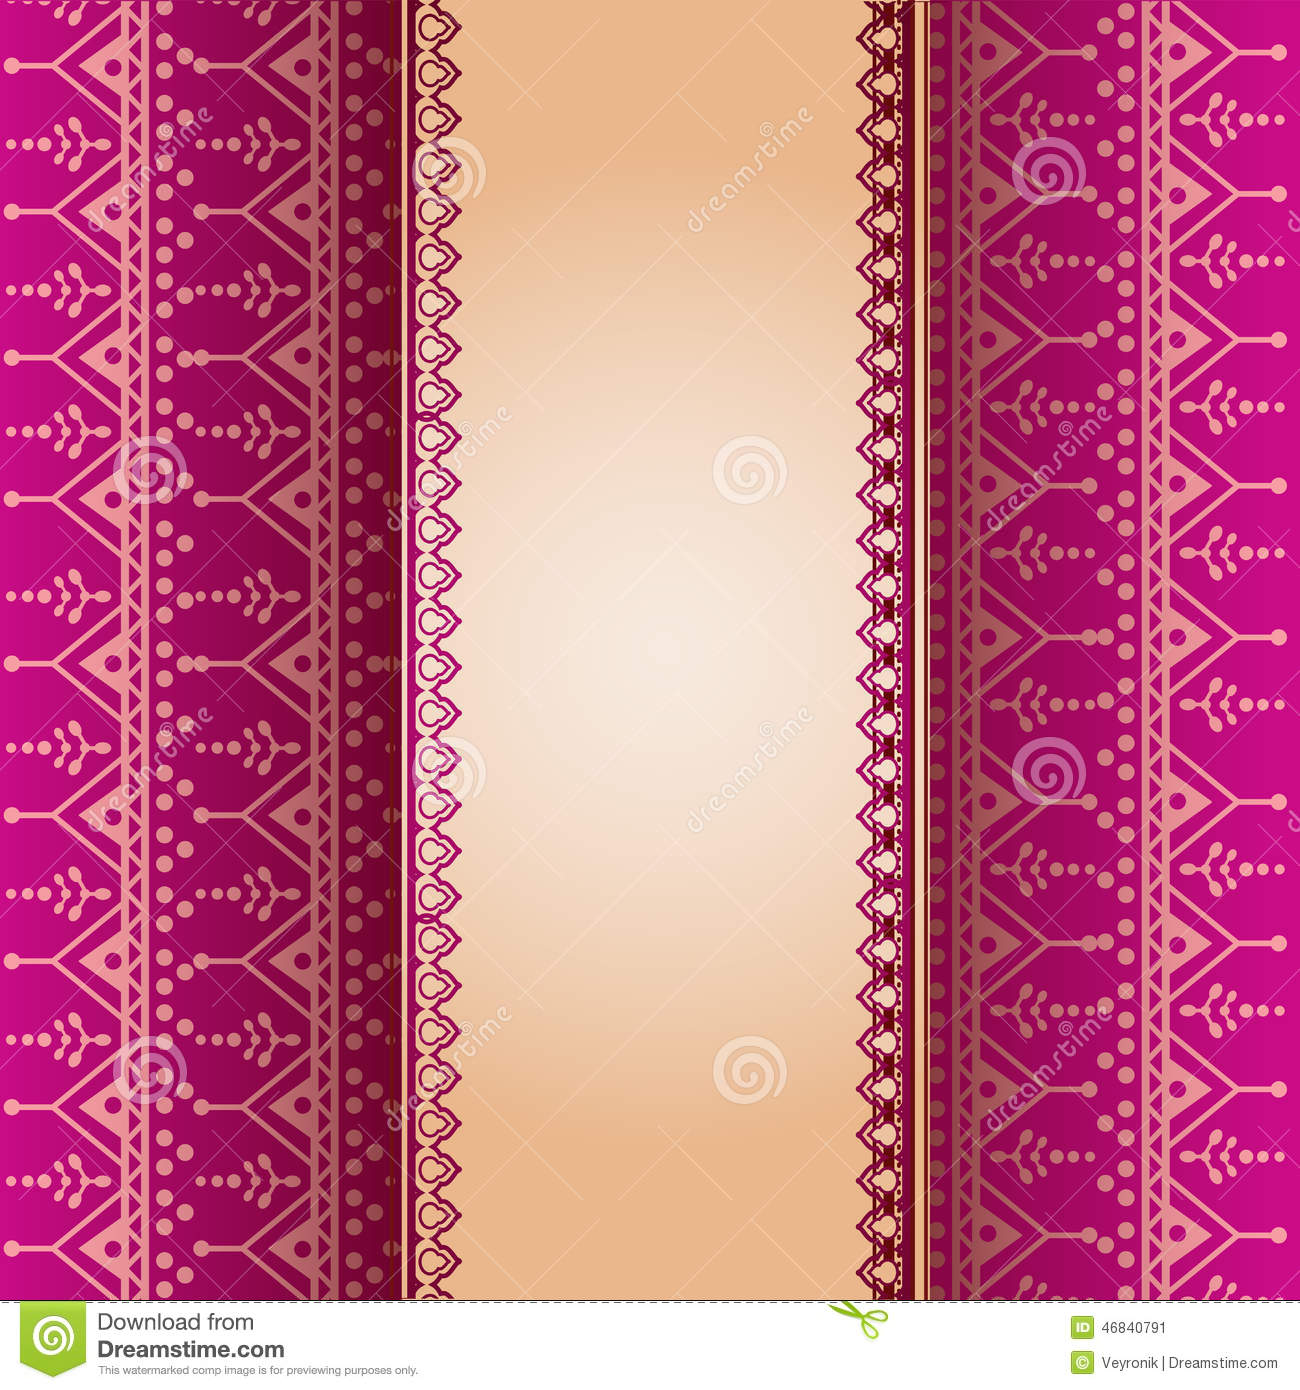 pink henna pattern vertical banner illustration 46840791 - megapixl